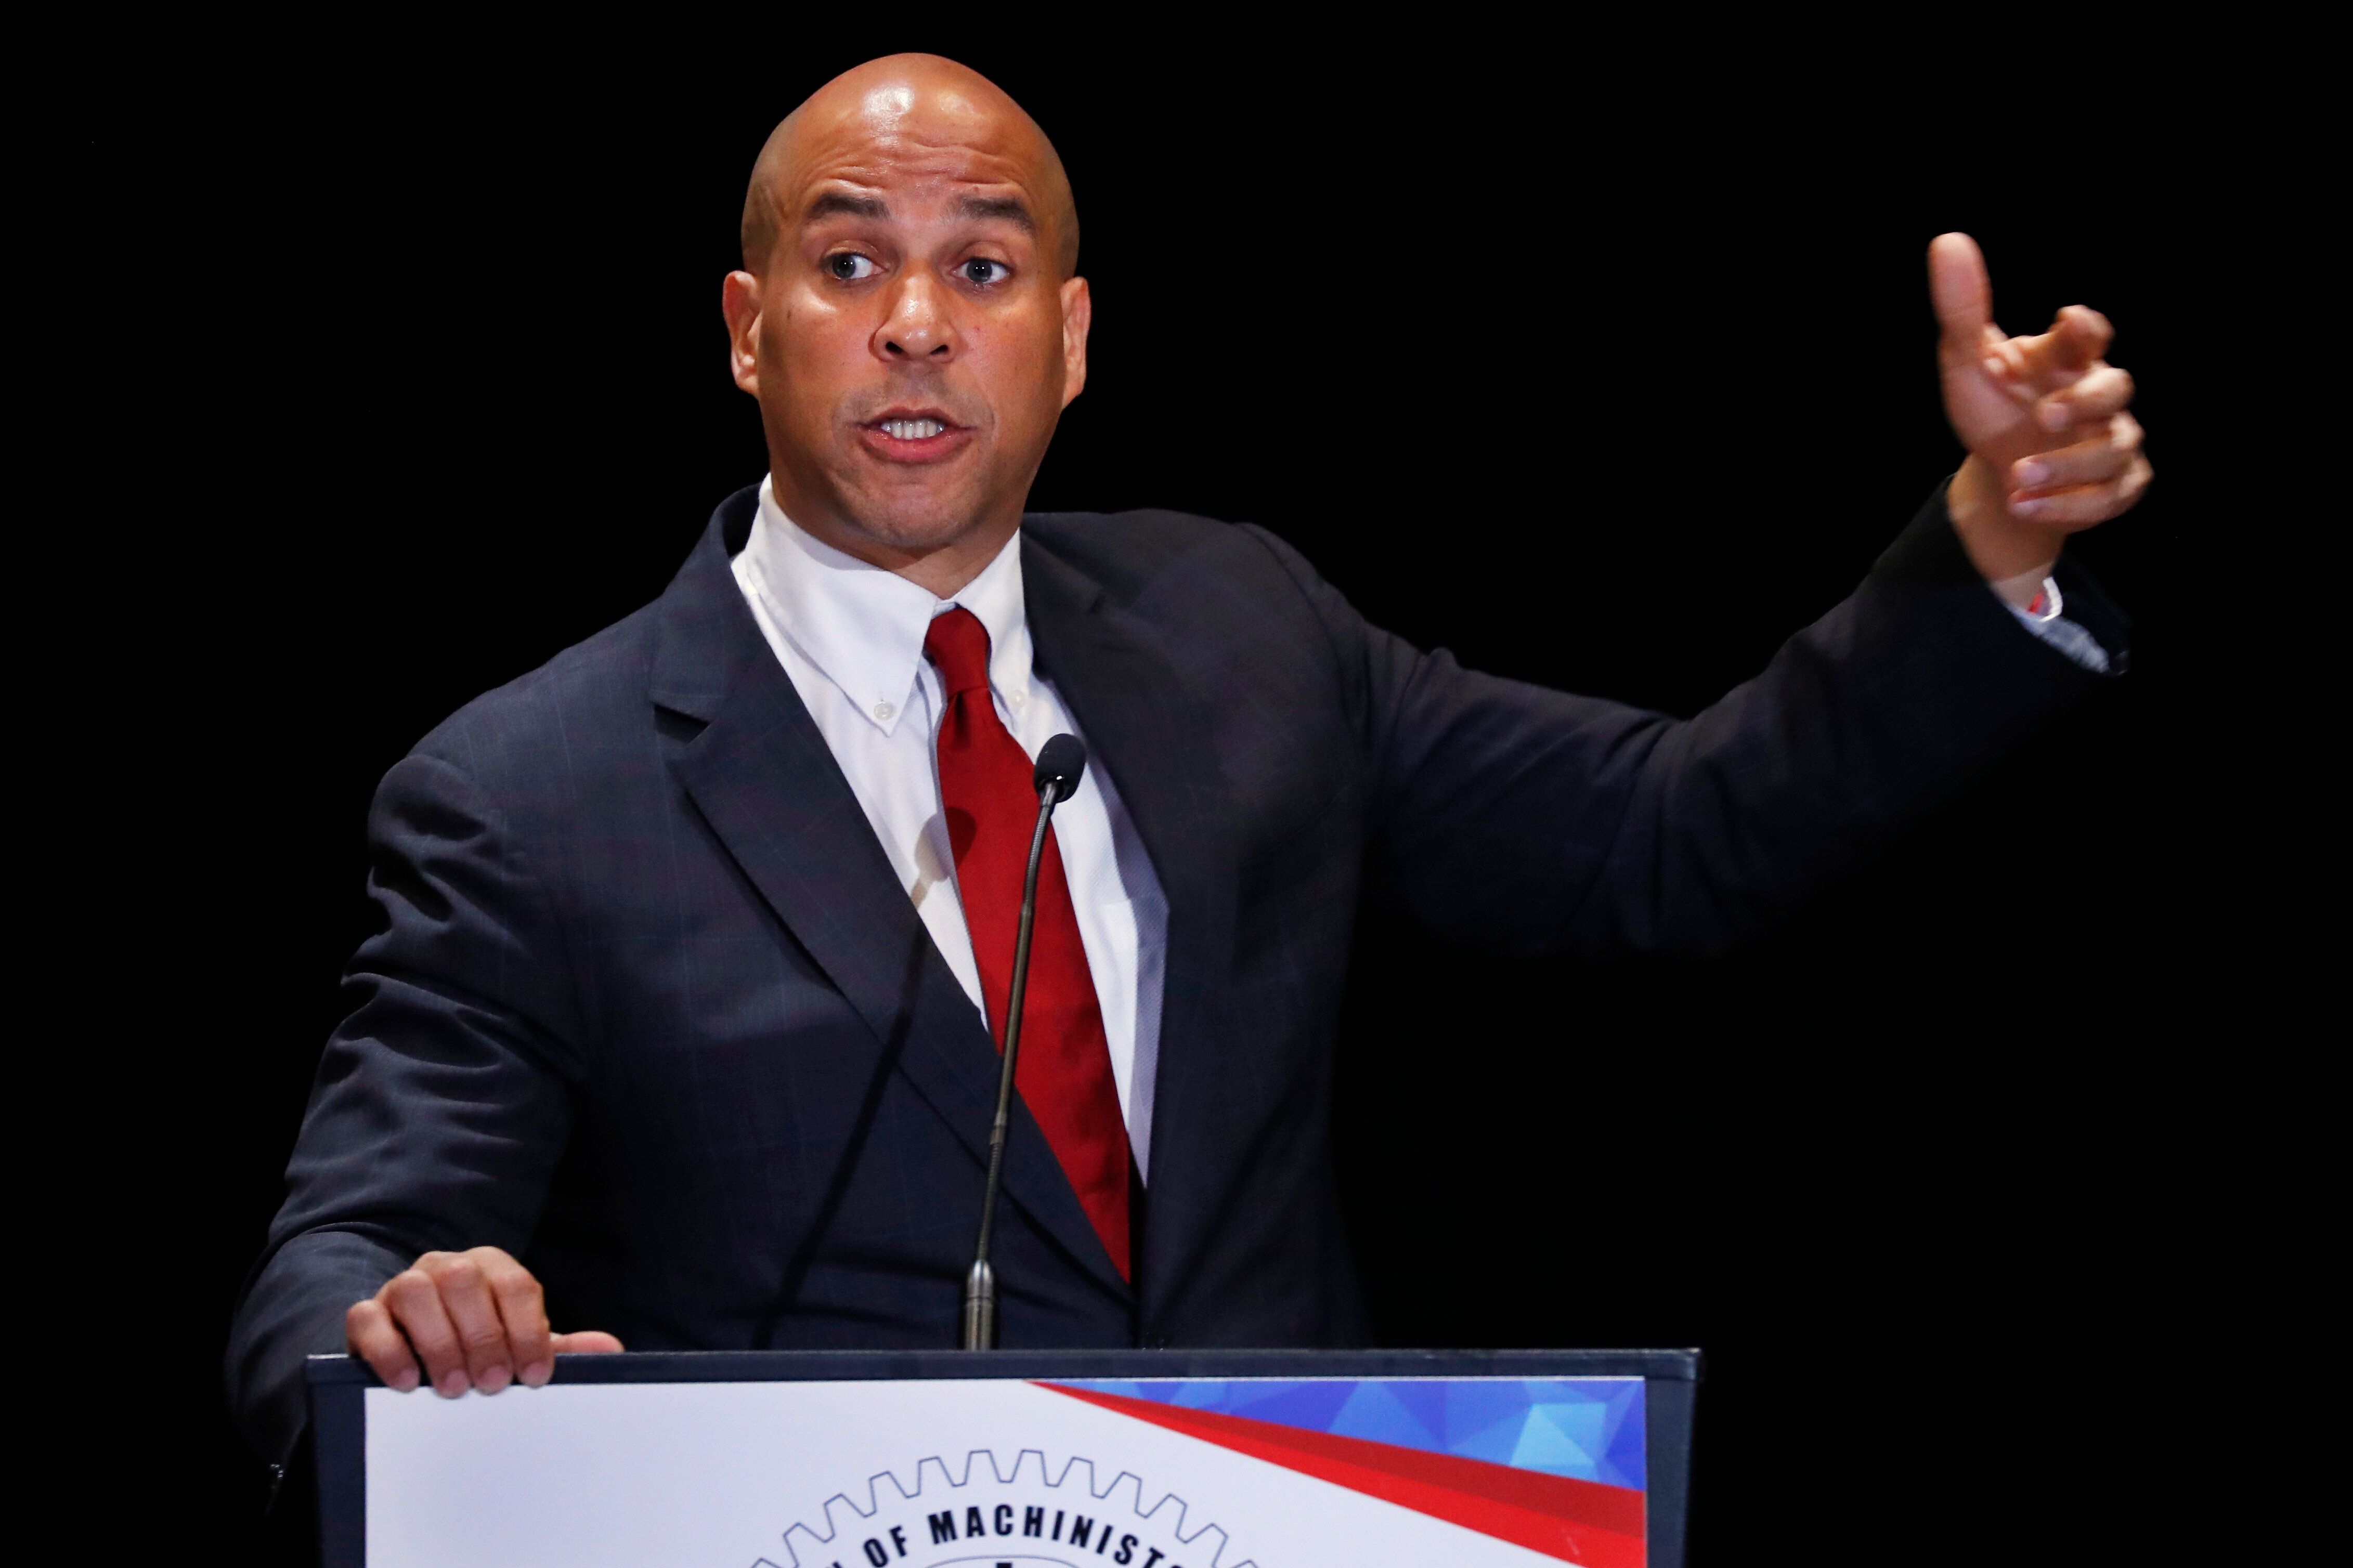 Democratic presidential candidate Sen. Cory Booker, D-N.J., speaks during the Machinists Union Legislative Conference, Tuesday May 7, 2019, in Washington. (AP Photo/Jacquelyn Martin)